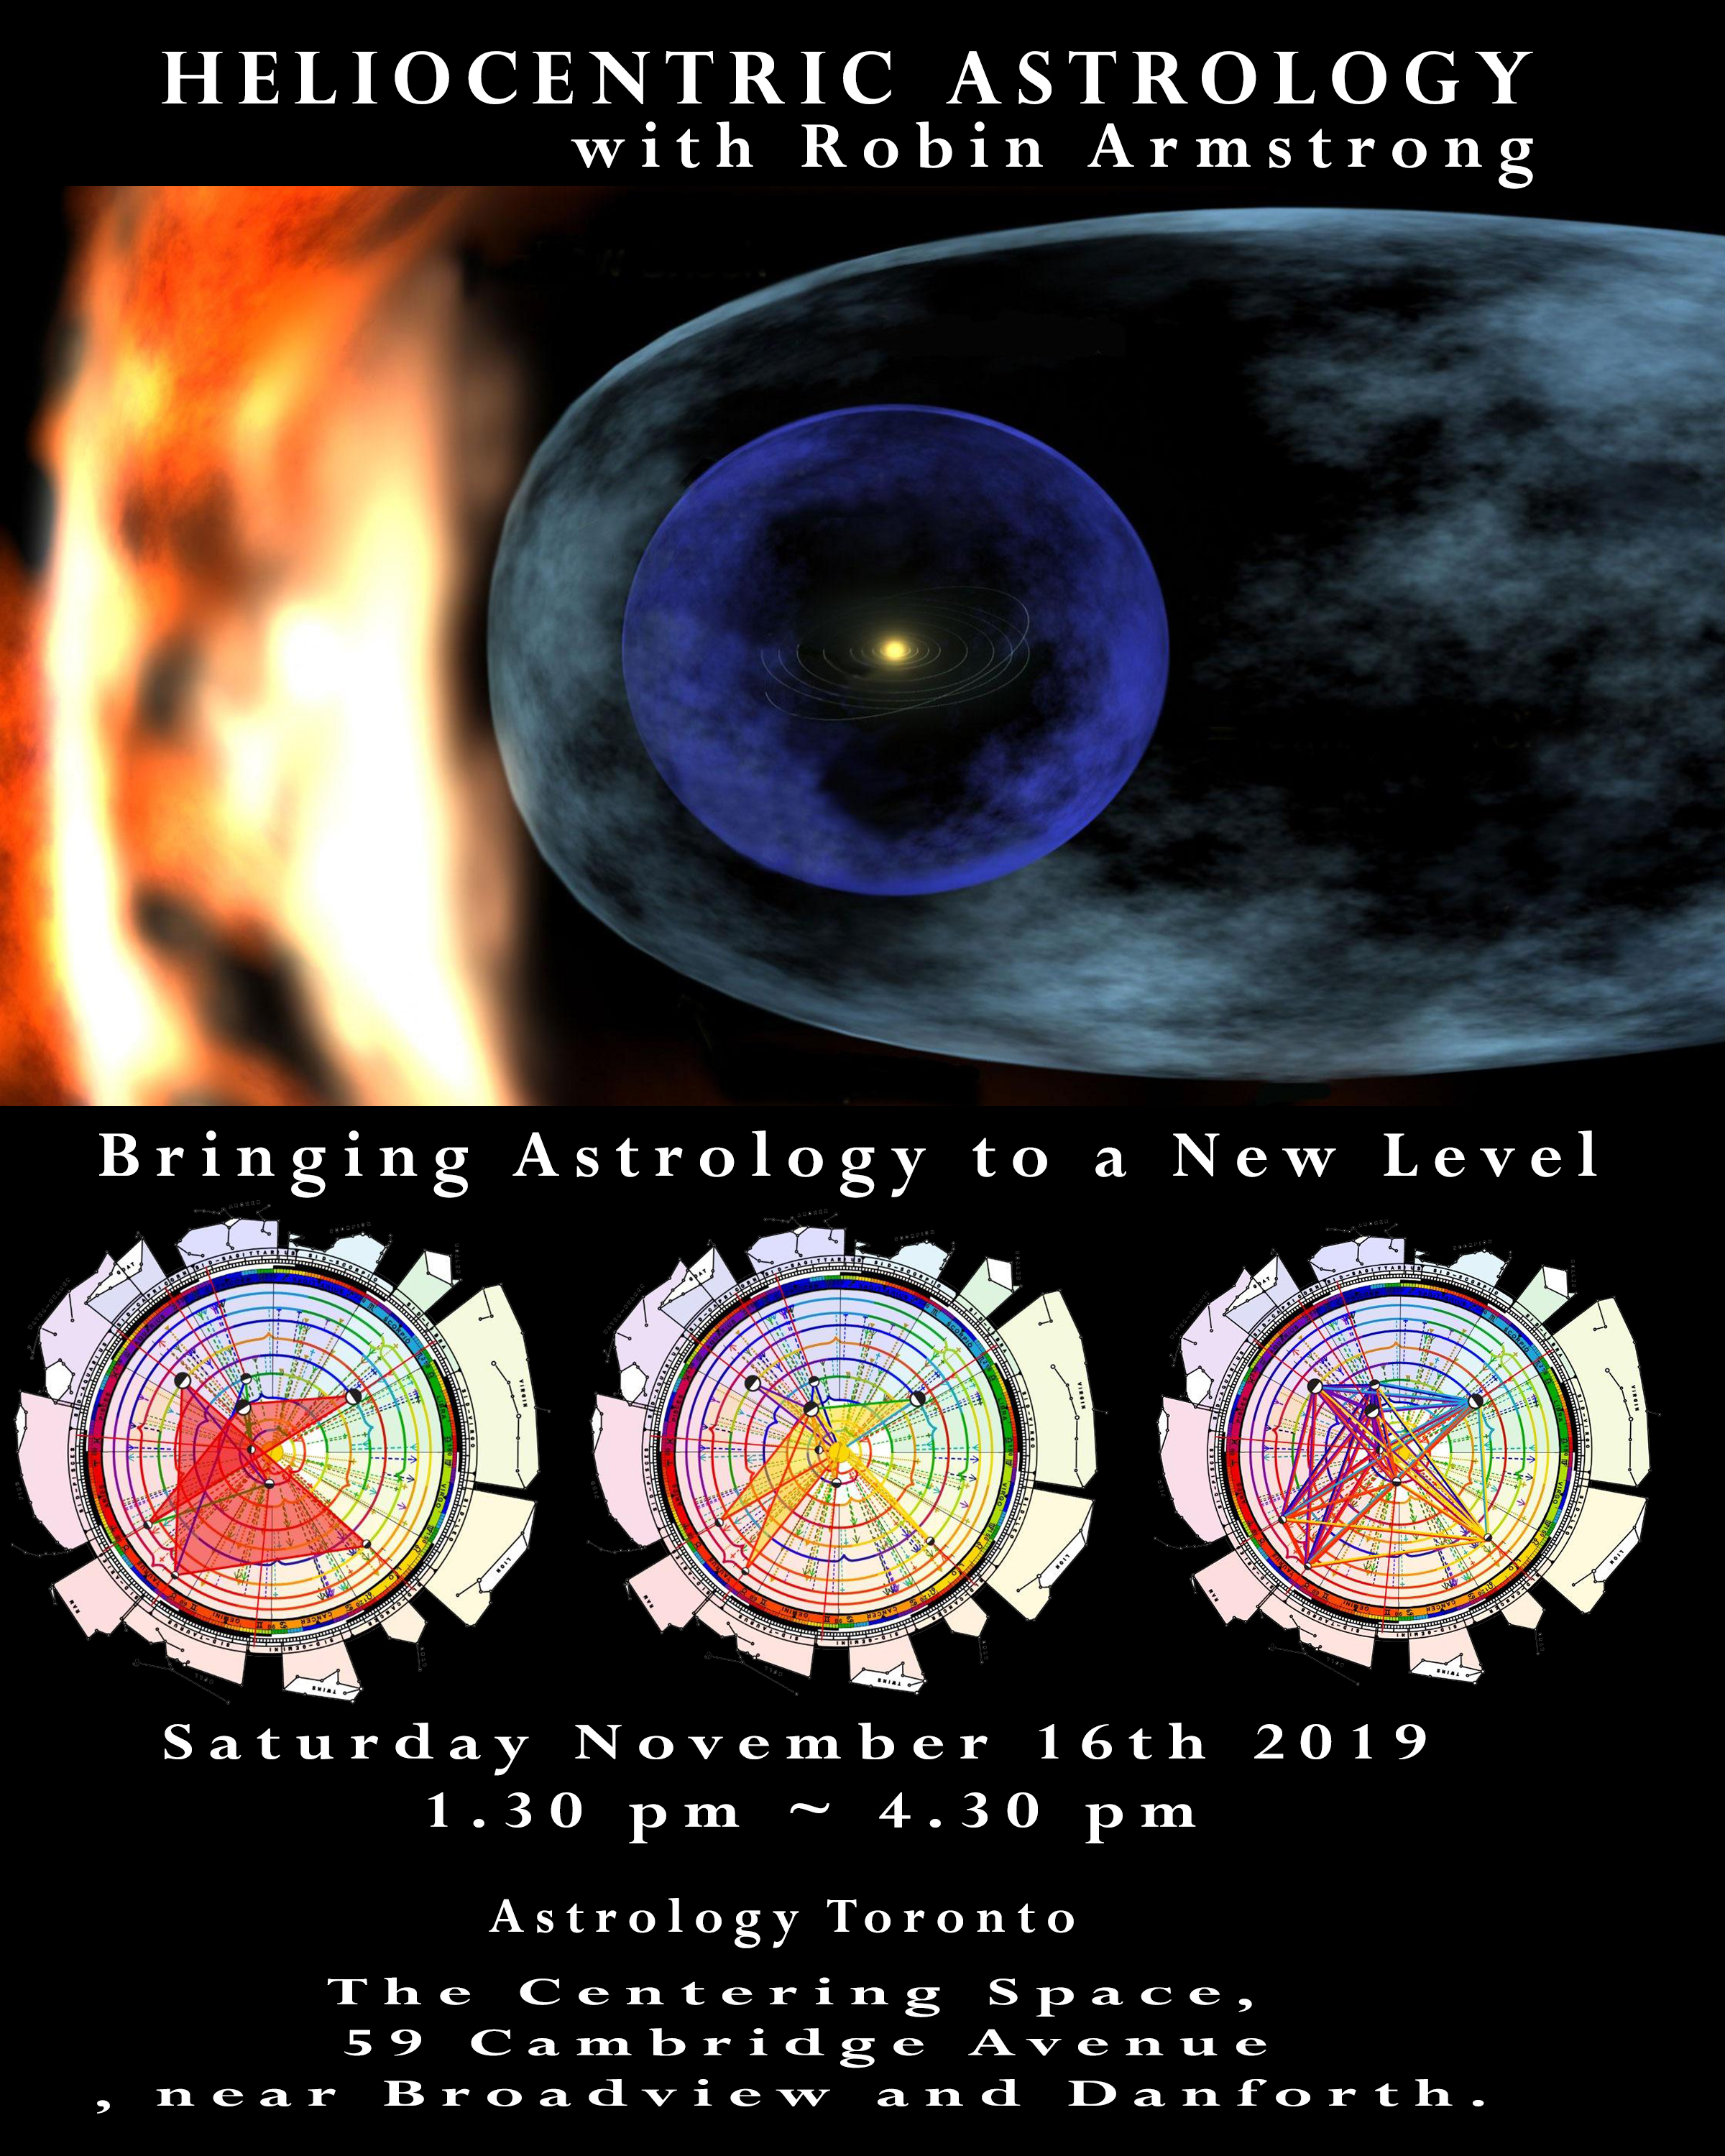 Heliocentric-Astrology-poster